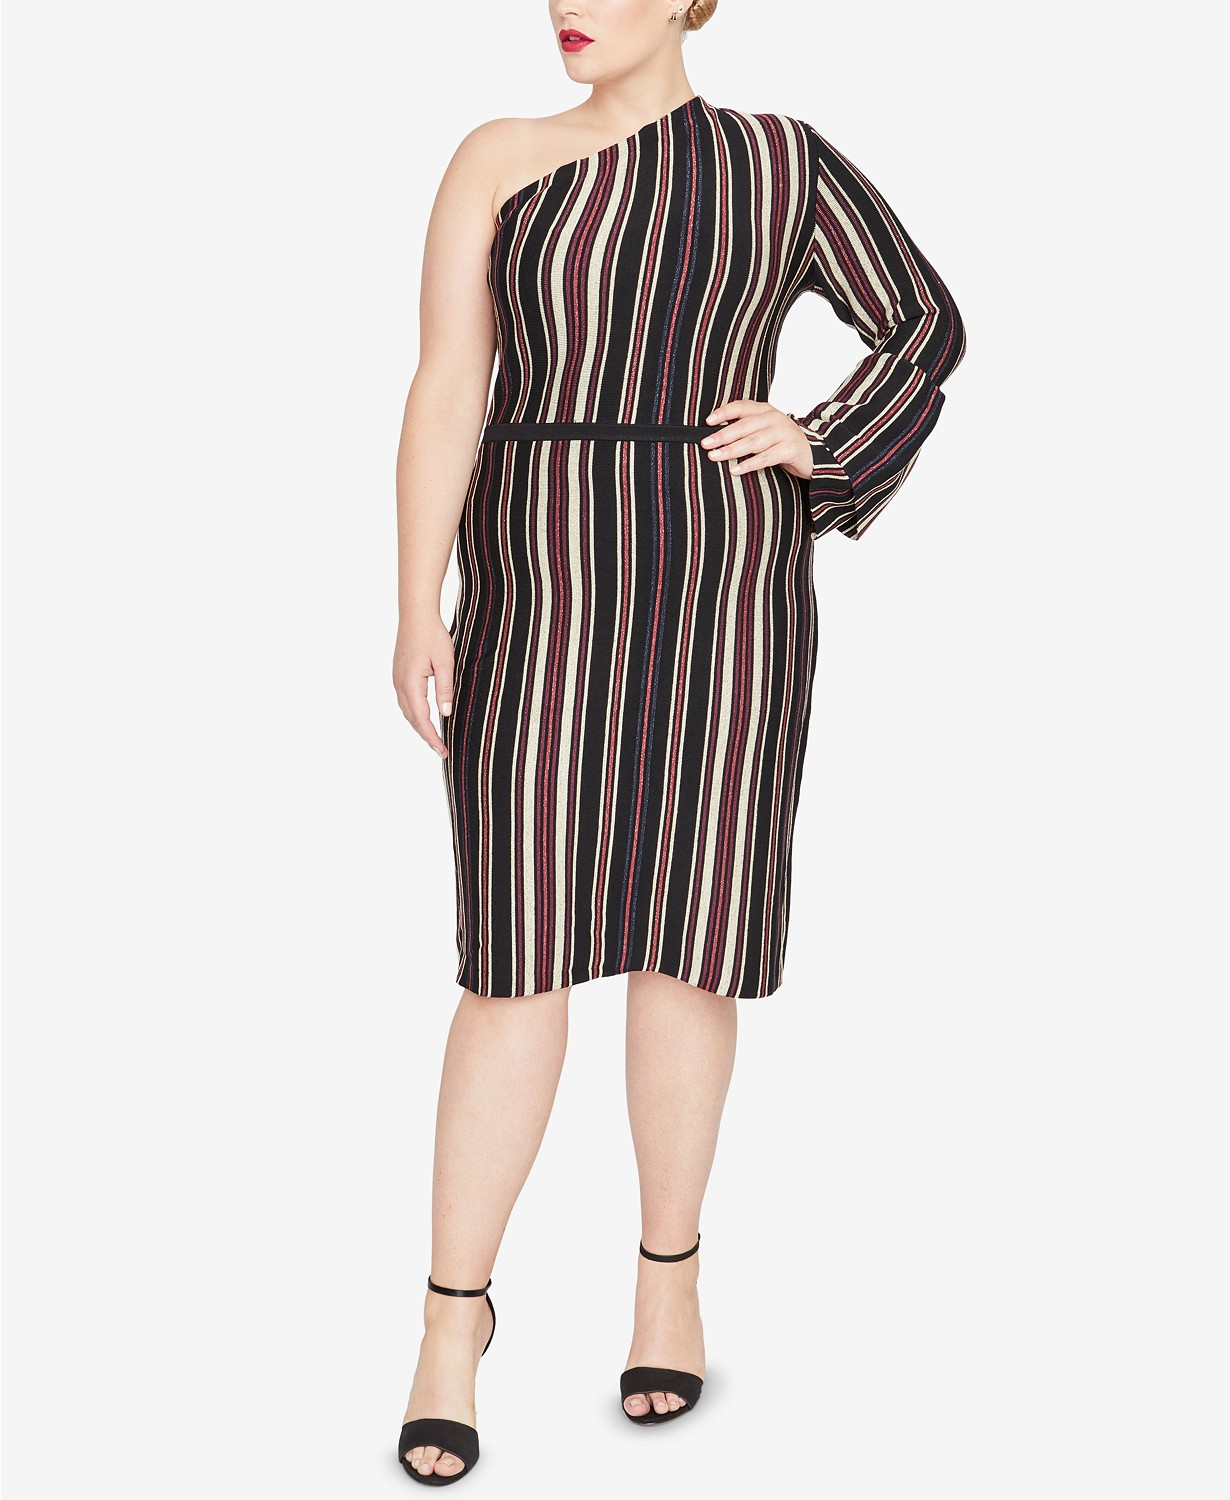 Striped plus size sweater dresses